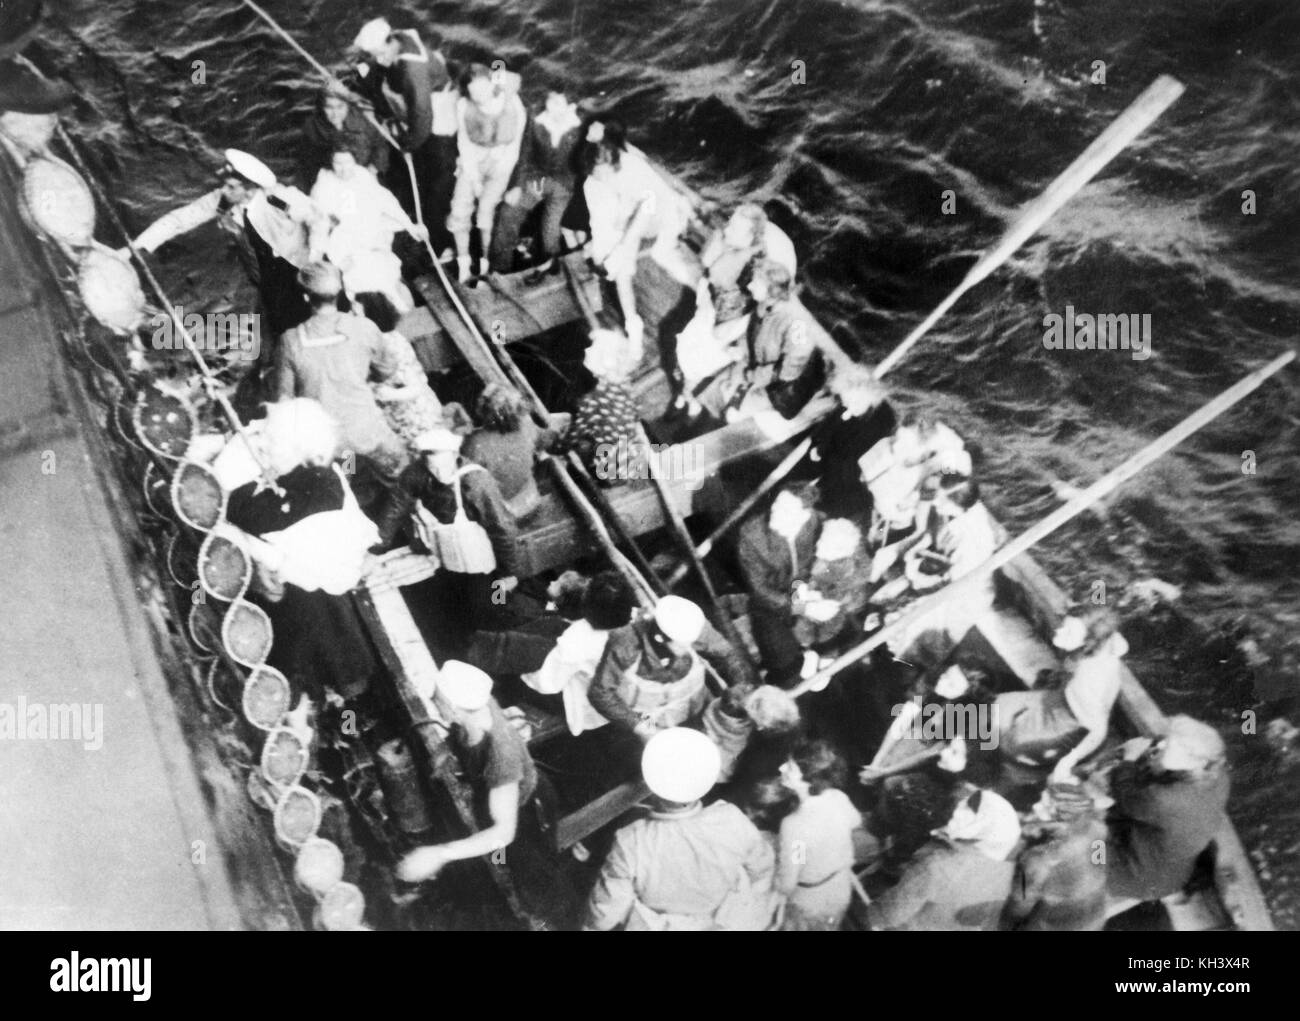 Survivors in one of SS Athenia's lifeboats alongside American cargo steamship City of Flint - Stock Image